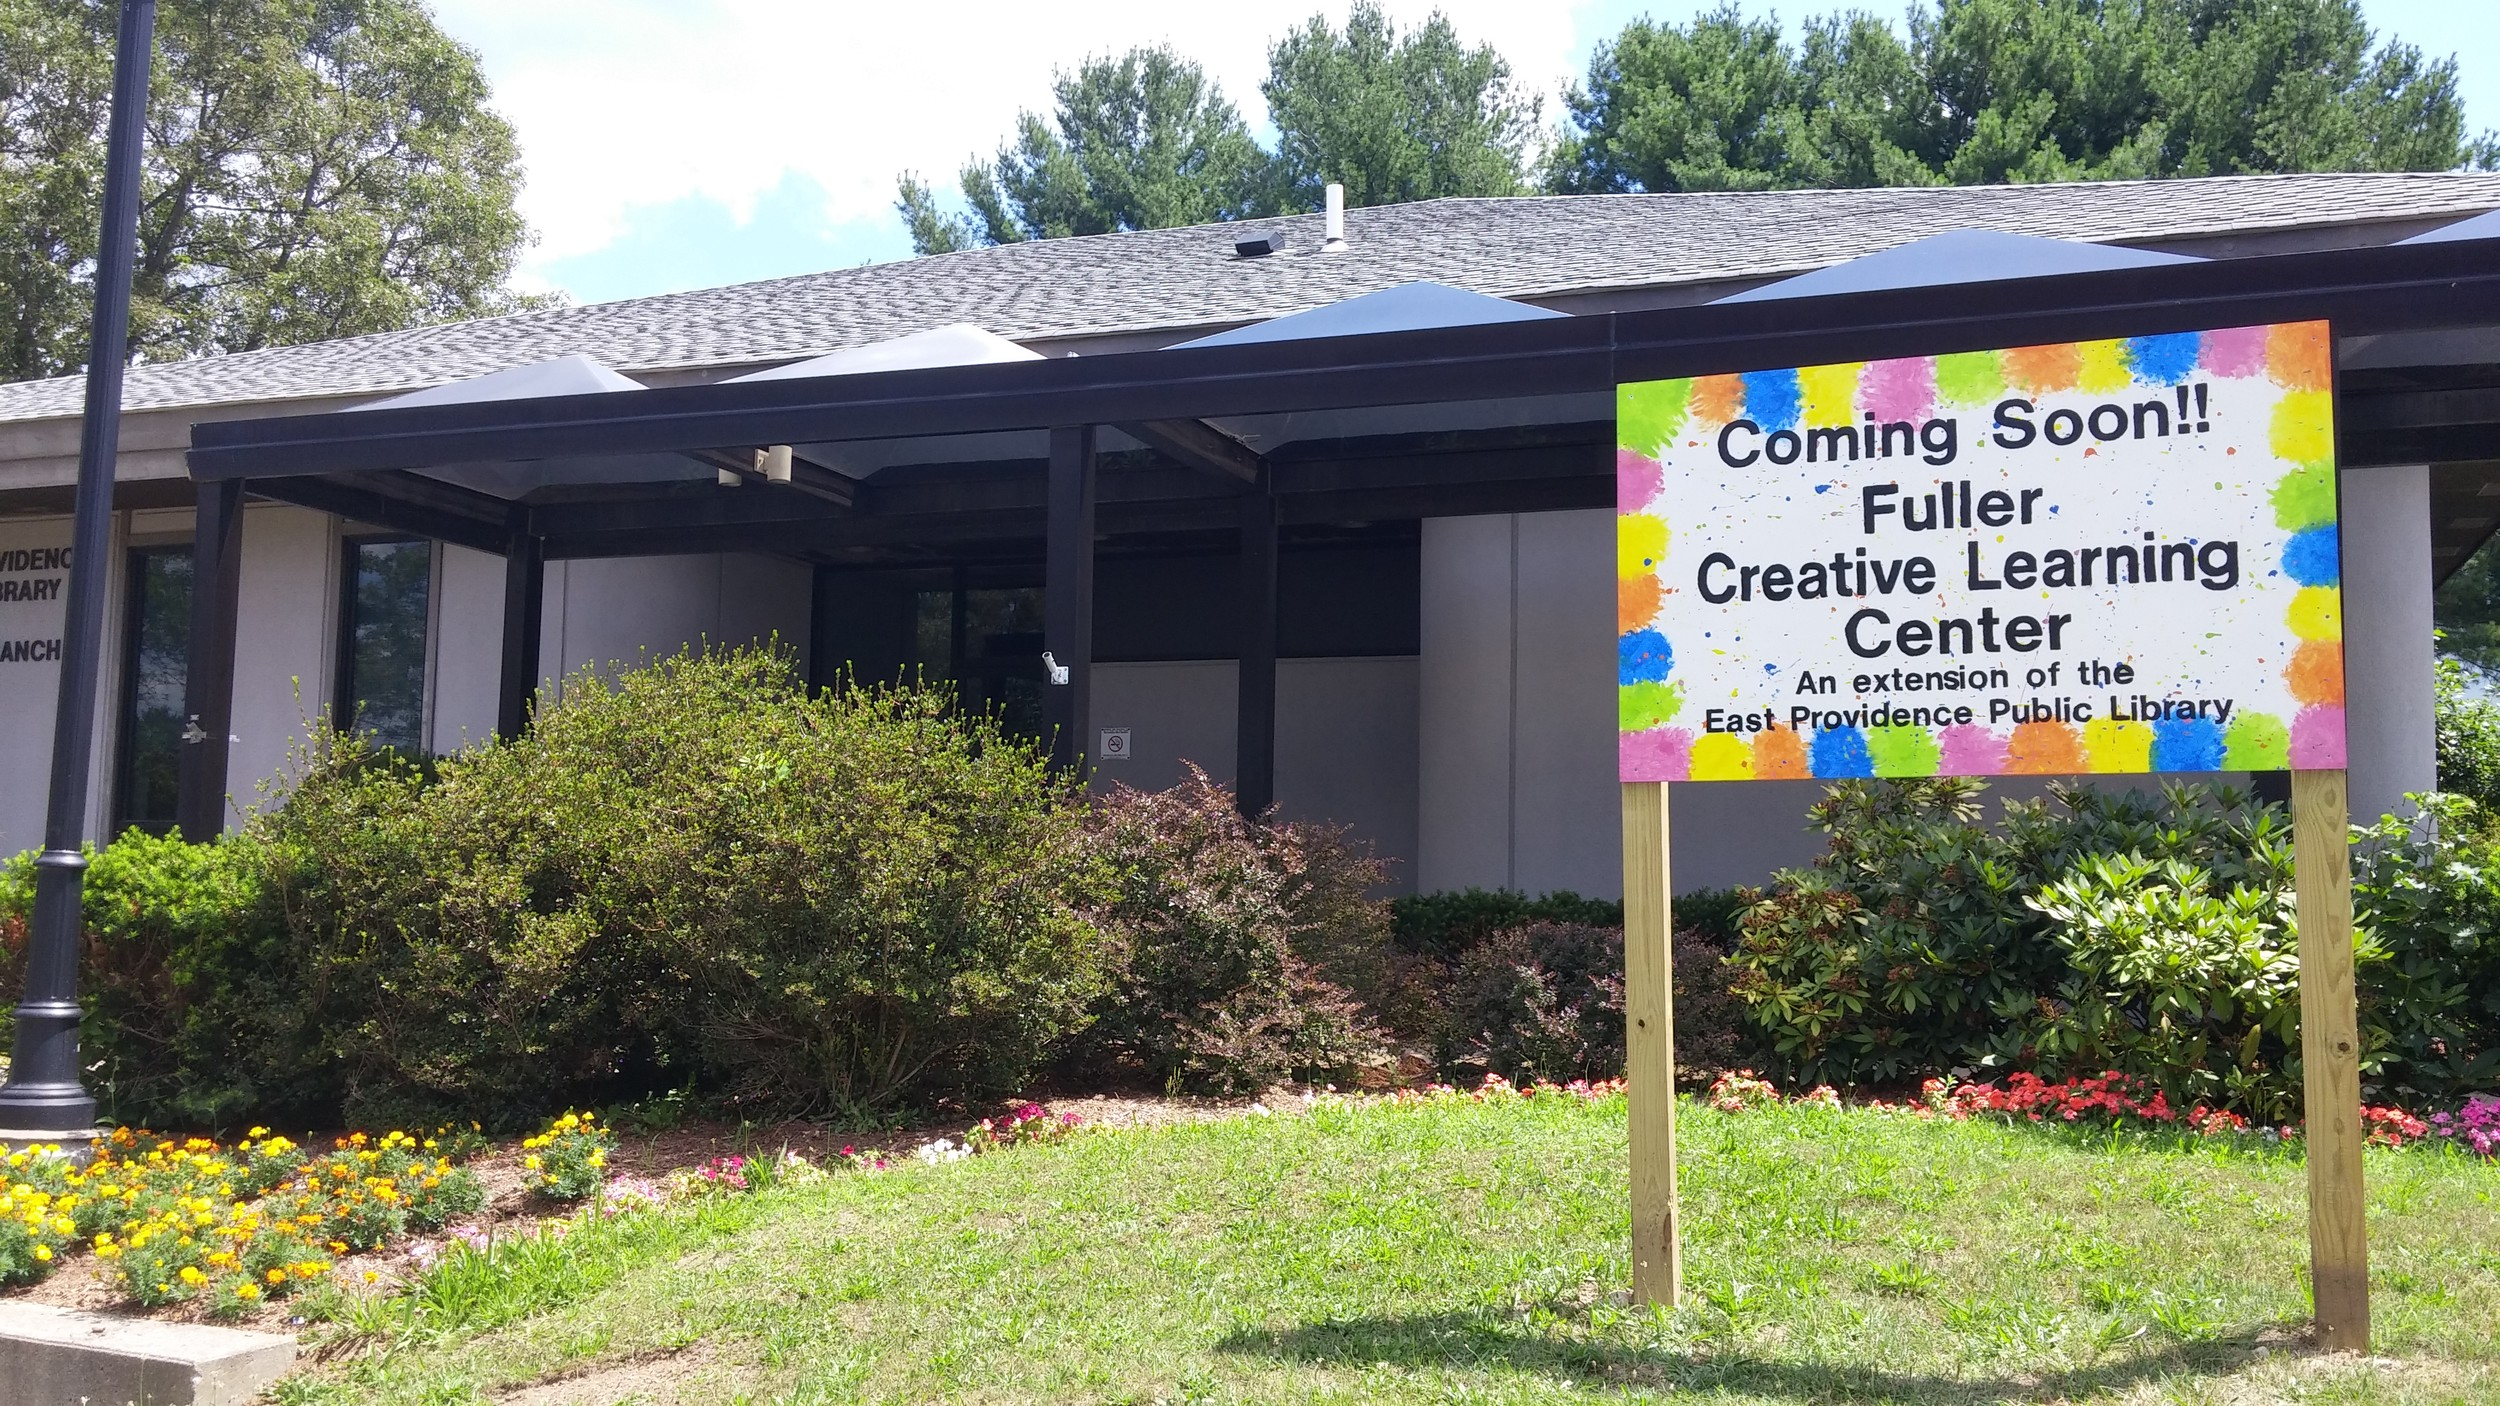 East Providence Public Library's Fuller Creative Learning Center Opens with Diverse Programs for All Ages